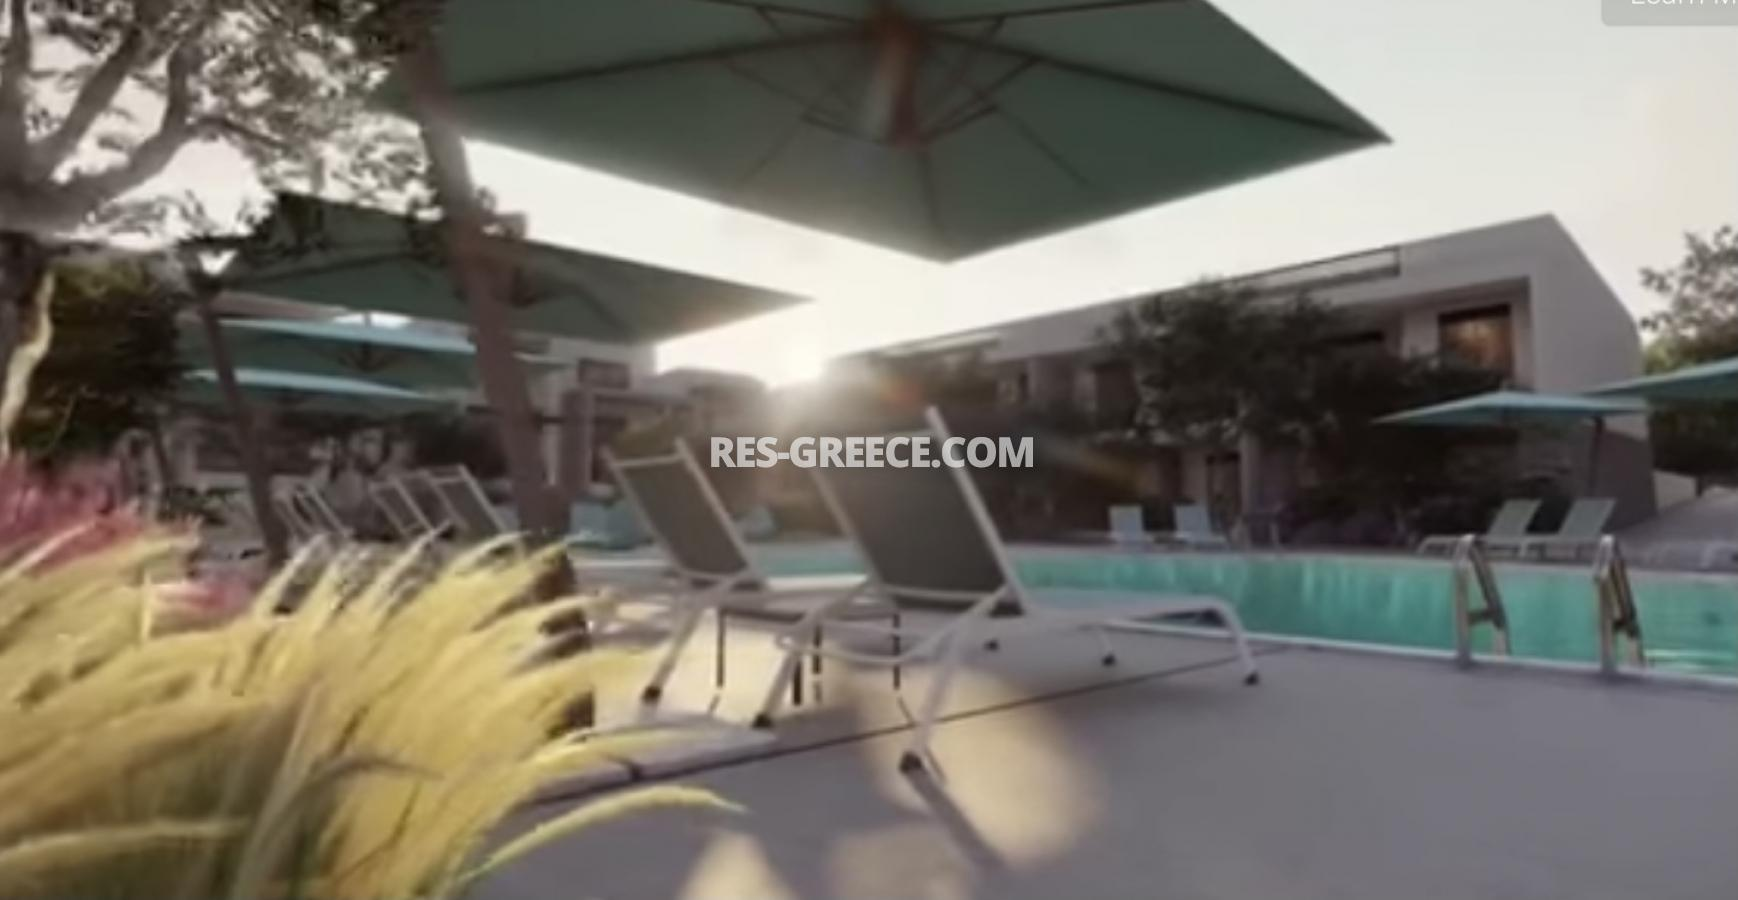 Anasa townhouses, Halkidiki-Sithonia, Greece - cottages in a new complex with the pool - Photo 12